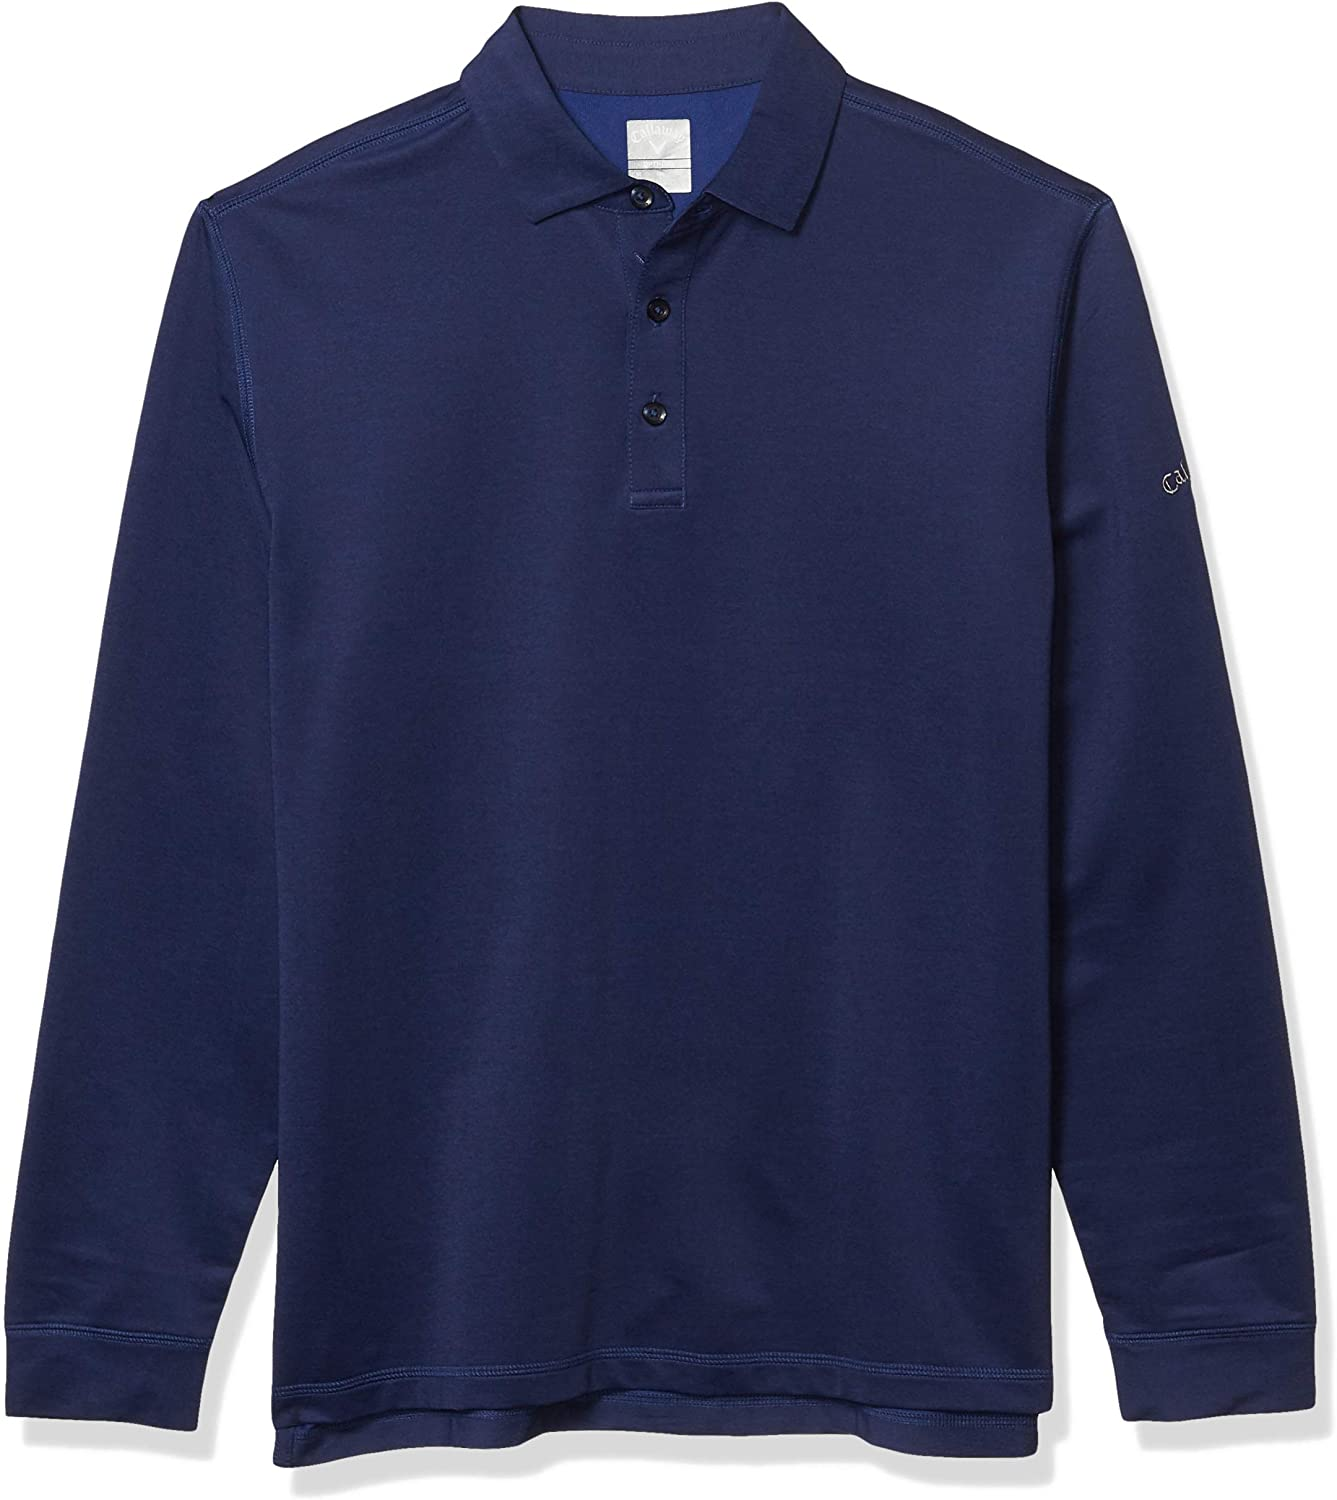 Callaway Mens Long Sleeve French Terry Heathered Solid Polo